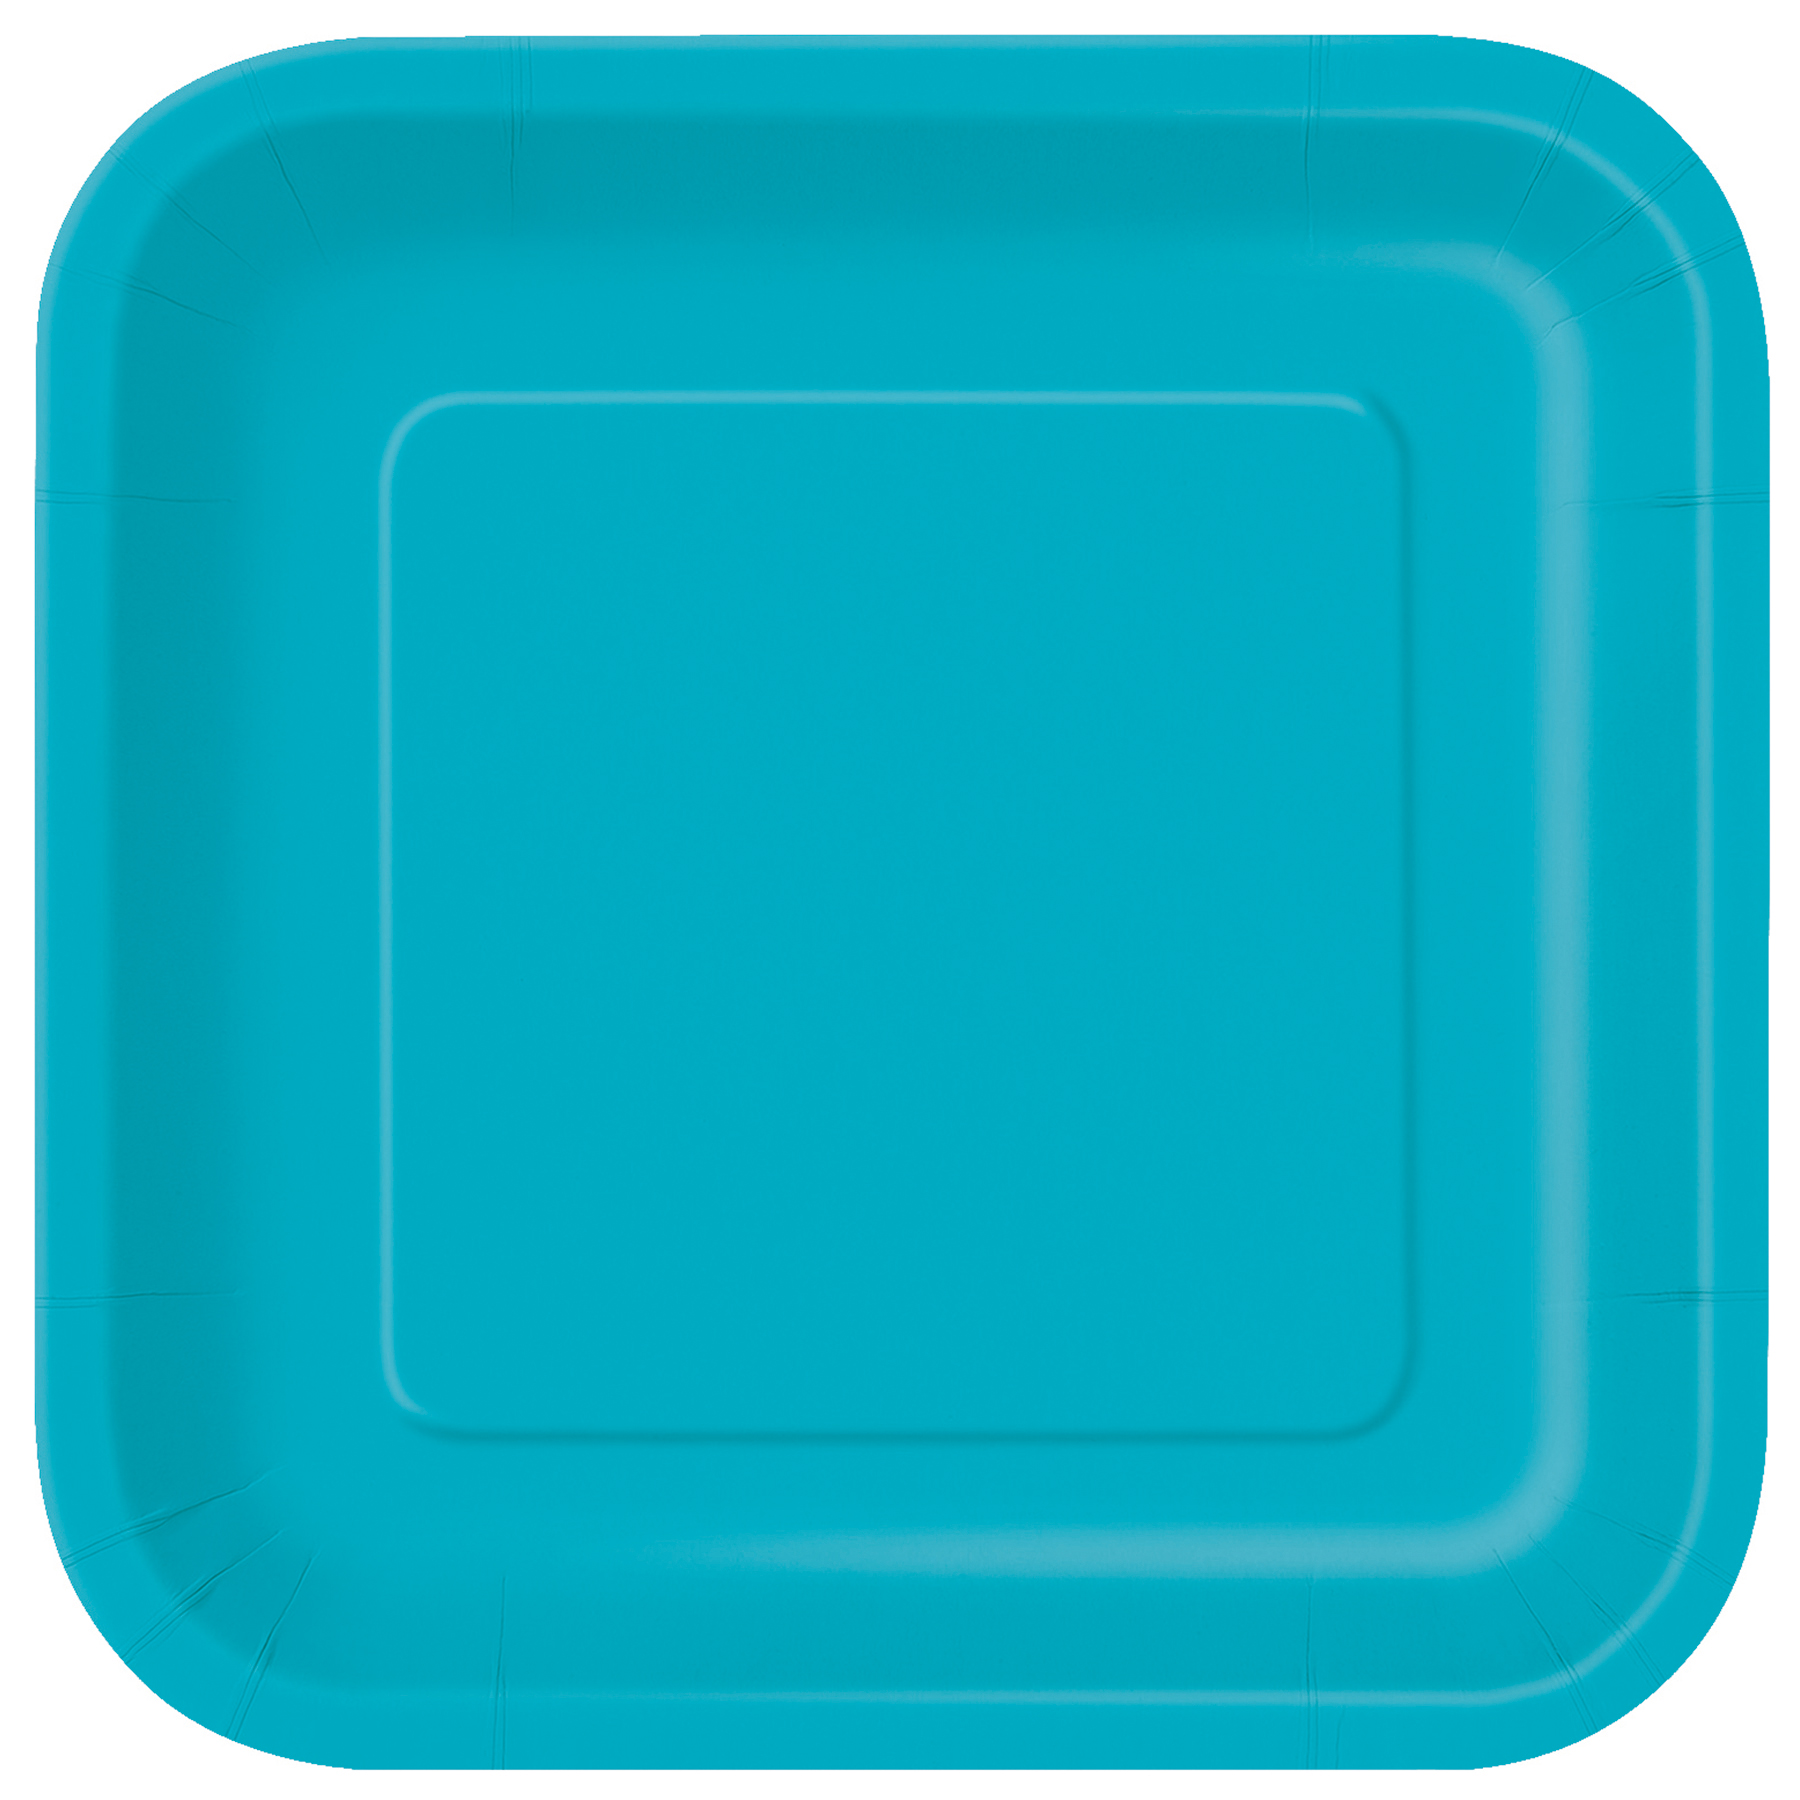 9\u201d Square Teal Dinner Plates ...  sc 1 st  Michaels Stores & 9\